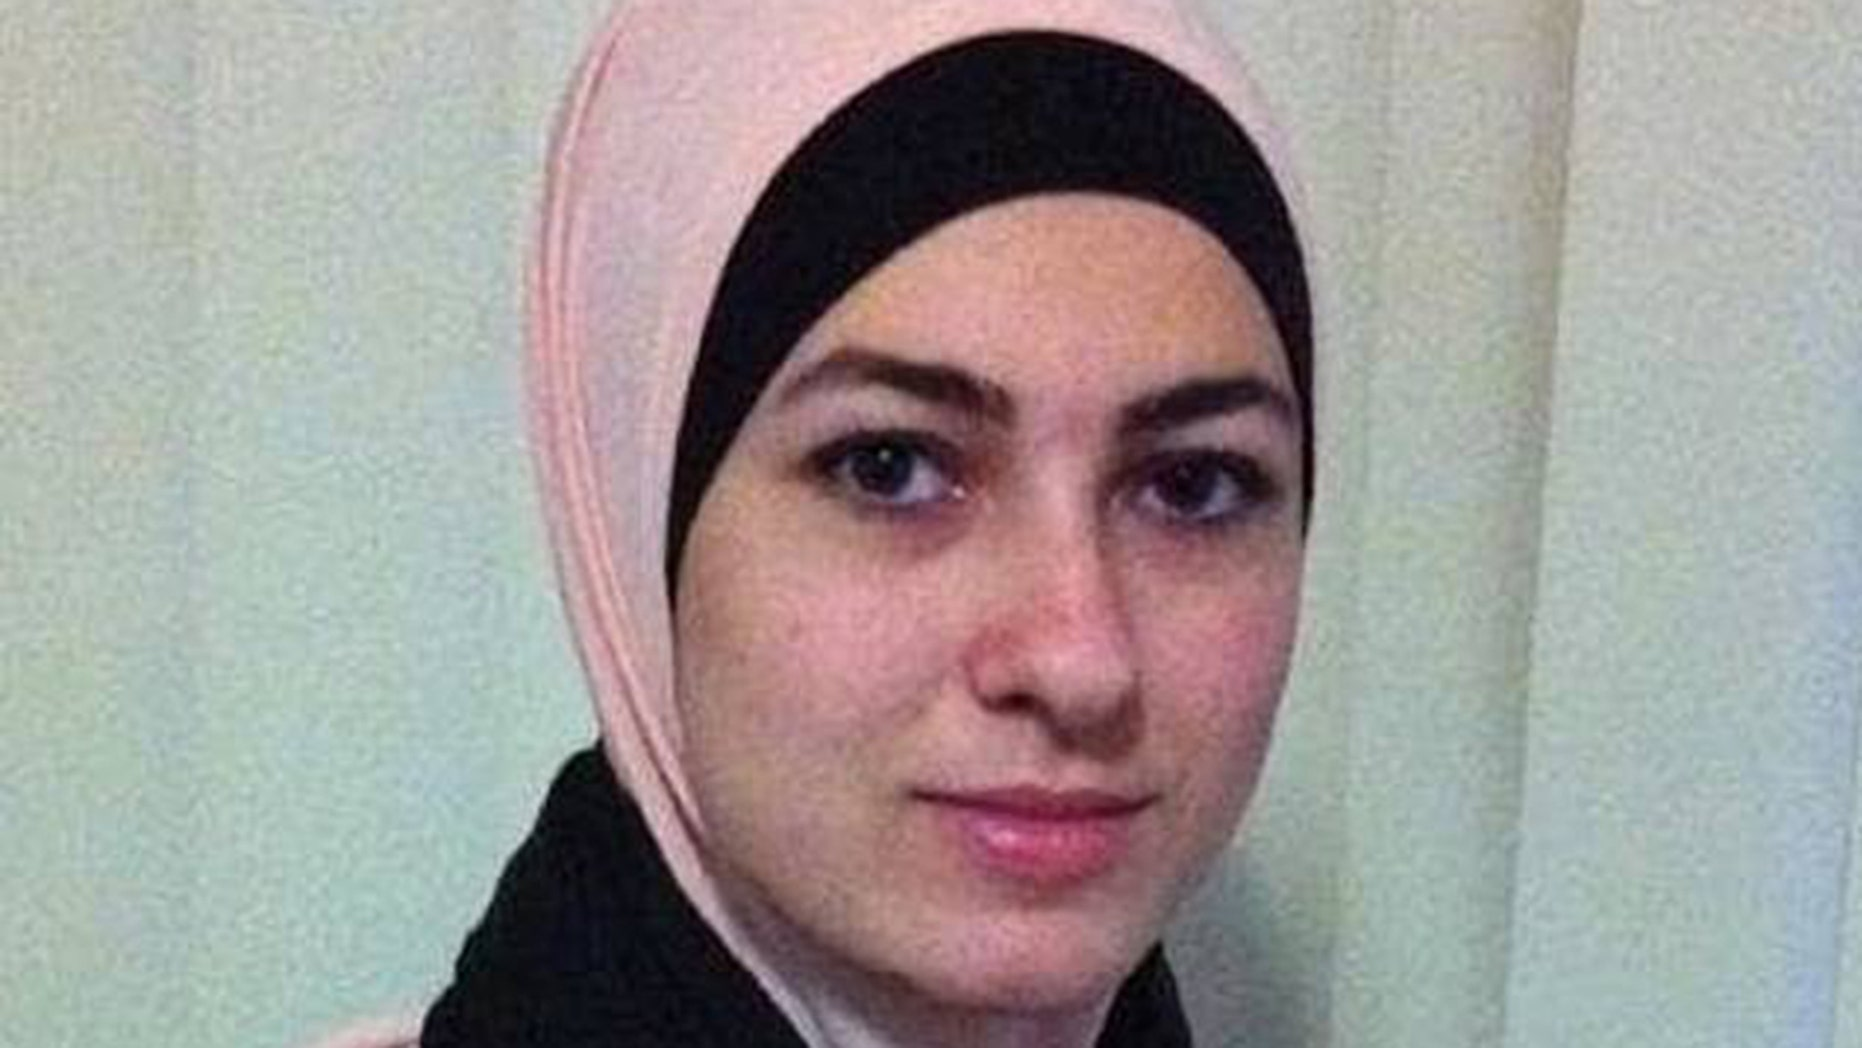 Janai Safar, 24, left to join the jihadi terror group in 2015 and is currently living in a refugee camp in northern Syriaafter its defeat.